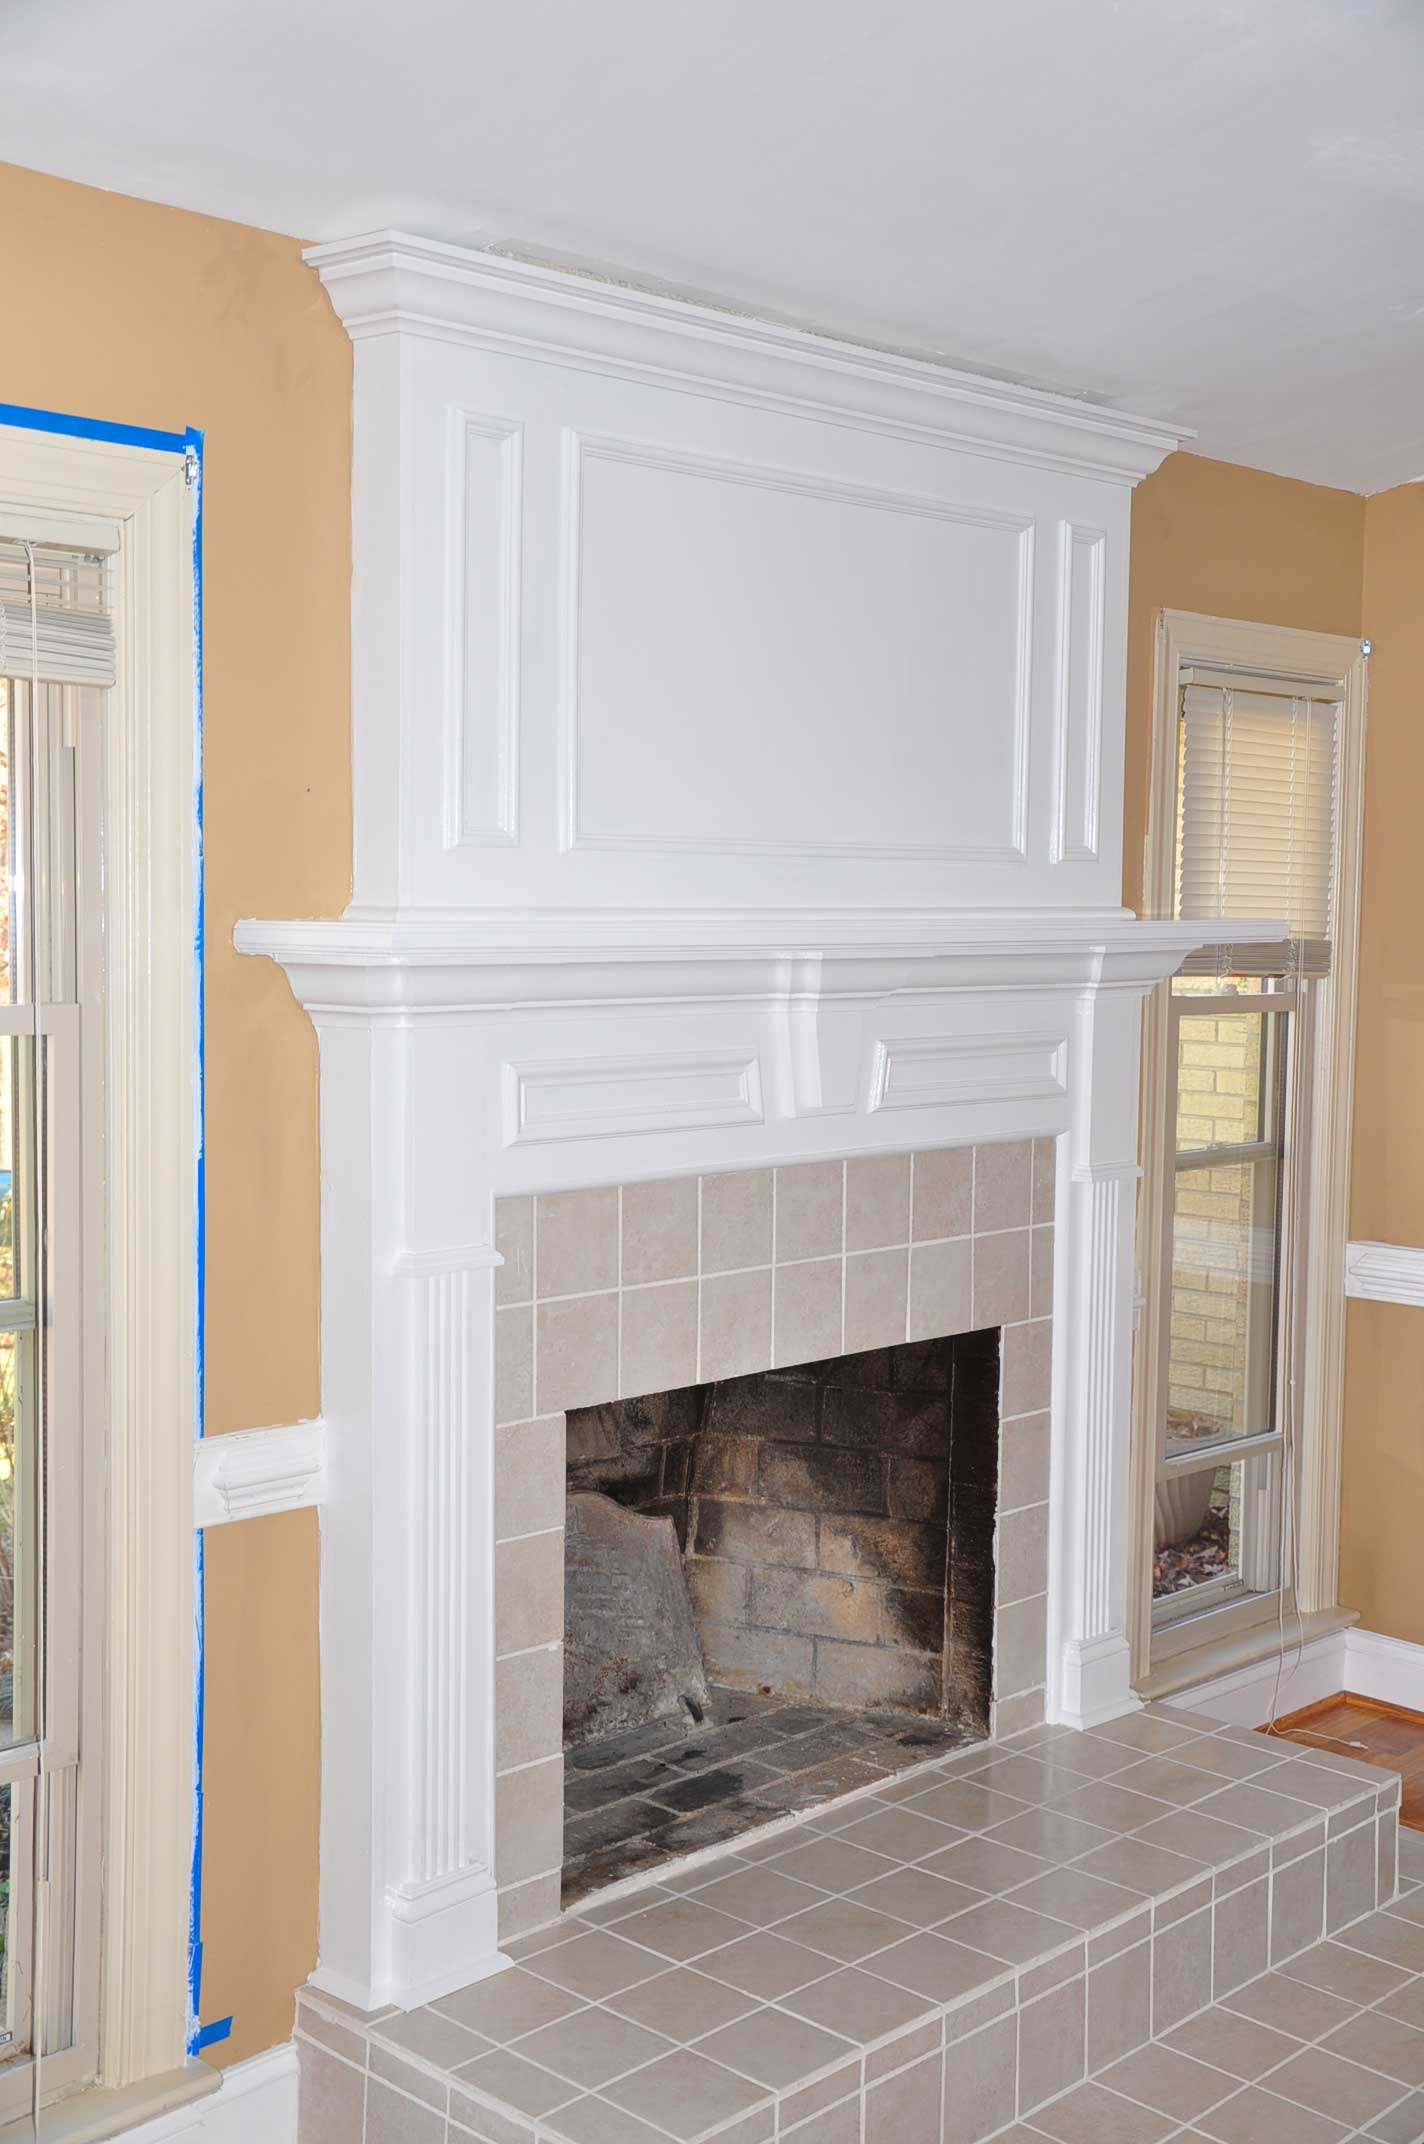 How To Remodel A Brick Fireplace Fireplace Design Ideas . - Fireplace Ideas Fireplace Design Ideas Fireplace Remodel